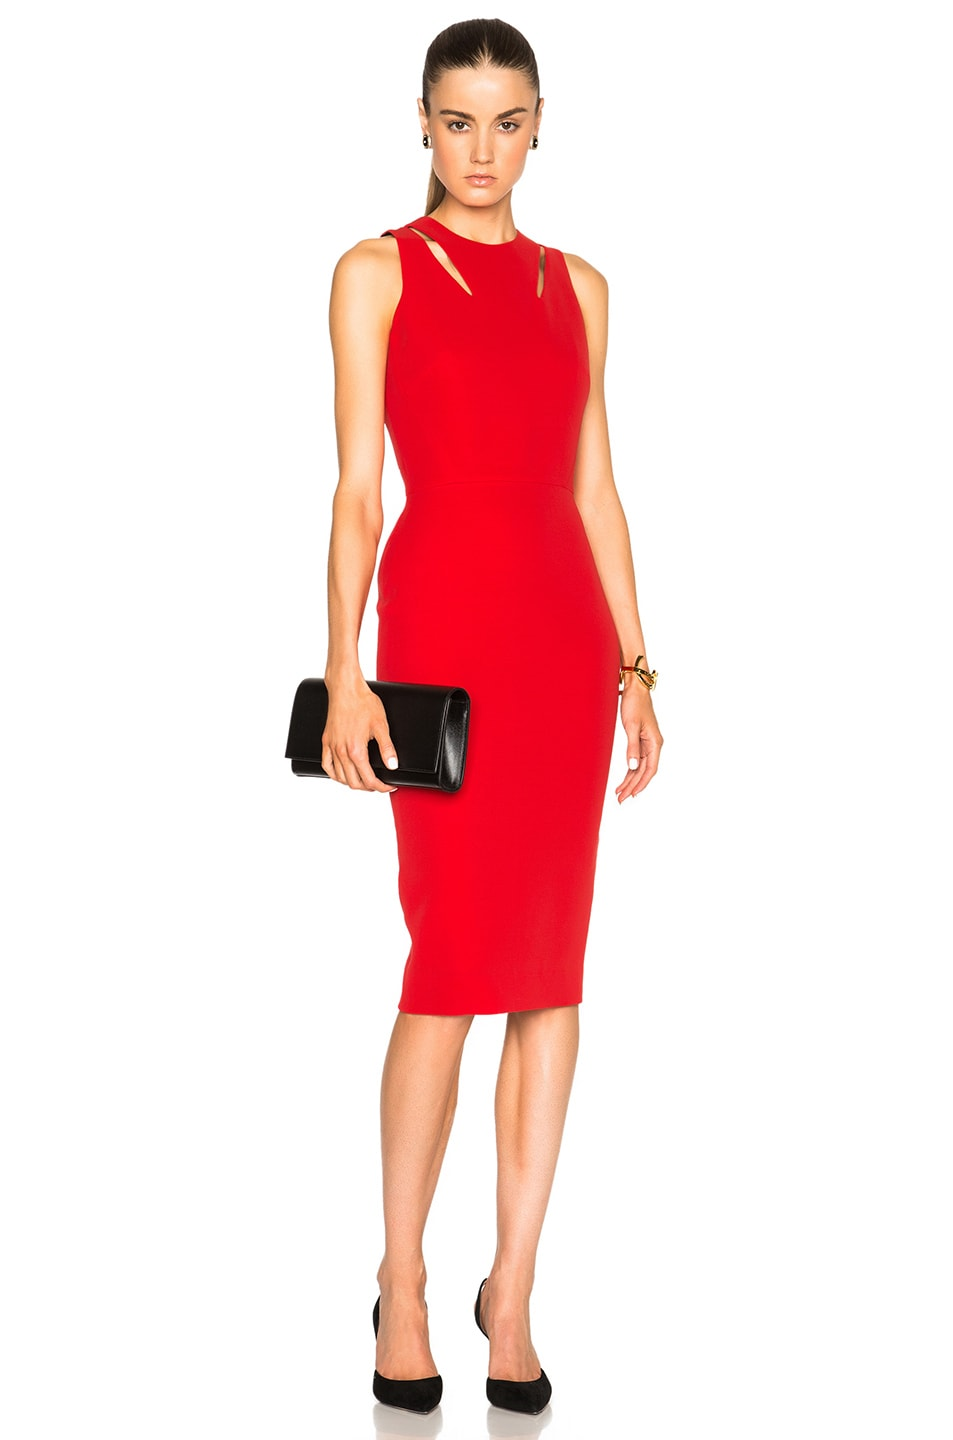 Victoria Beckham Double Crepe Sleeveless Cut Out Dress in Red